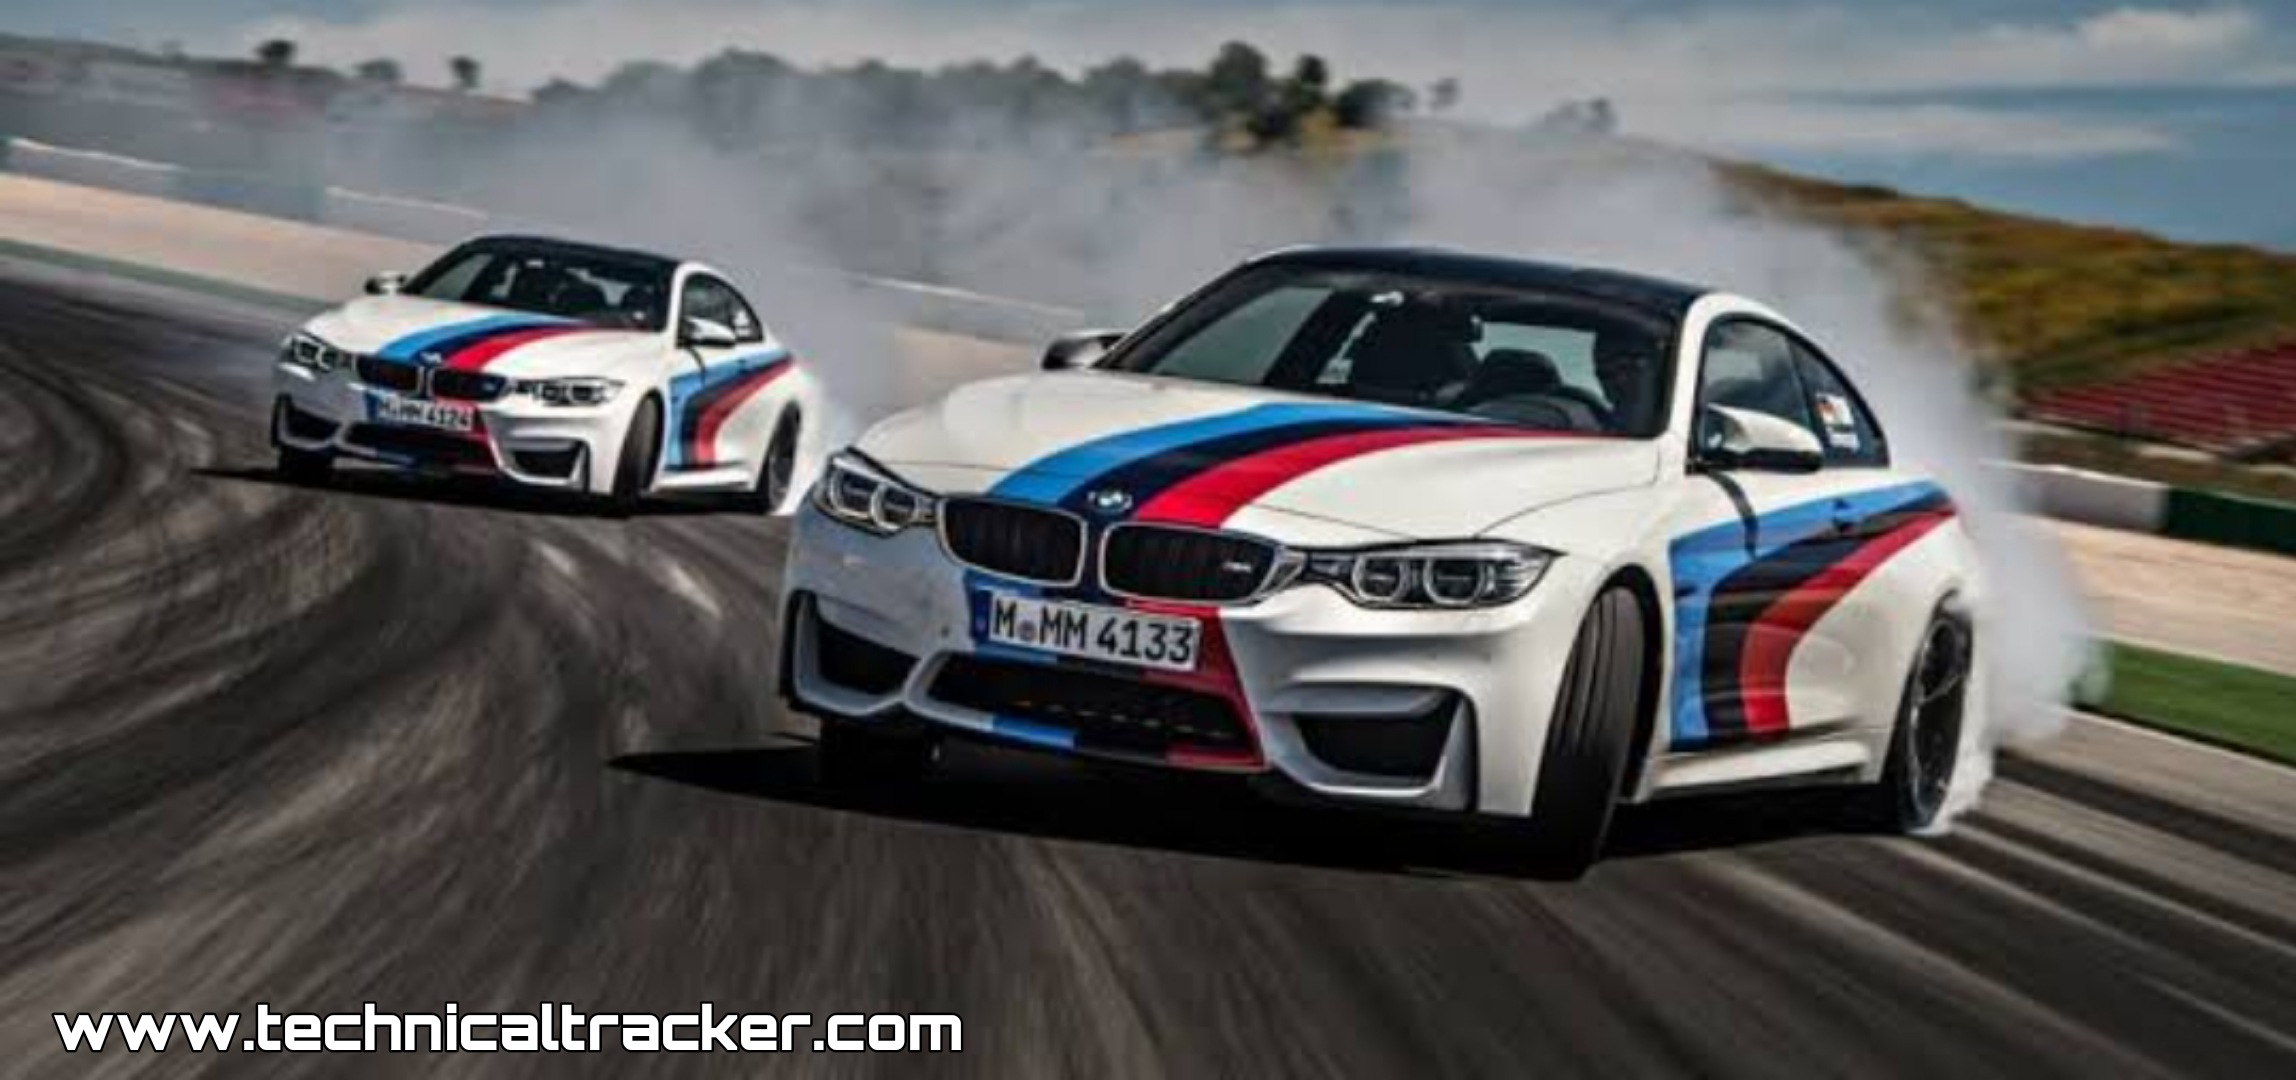 Top 10 New Sports Cars In The World   November   2020  